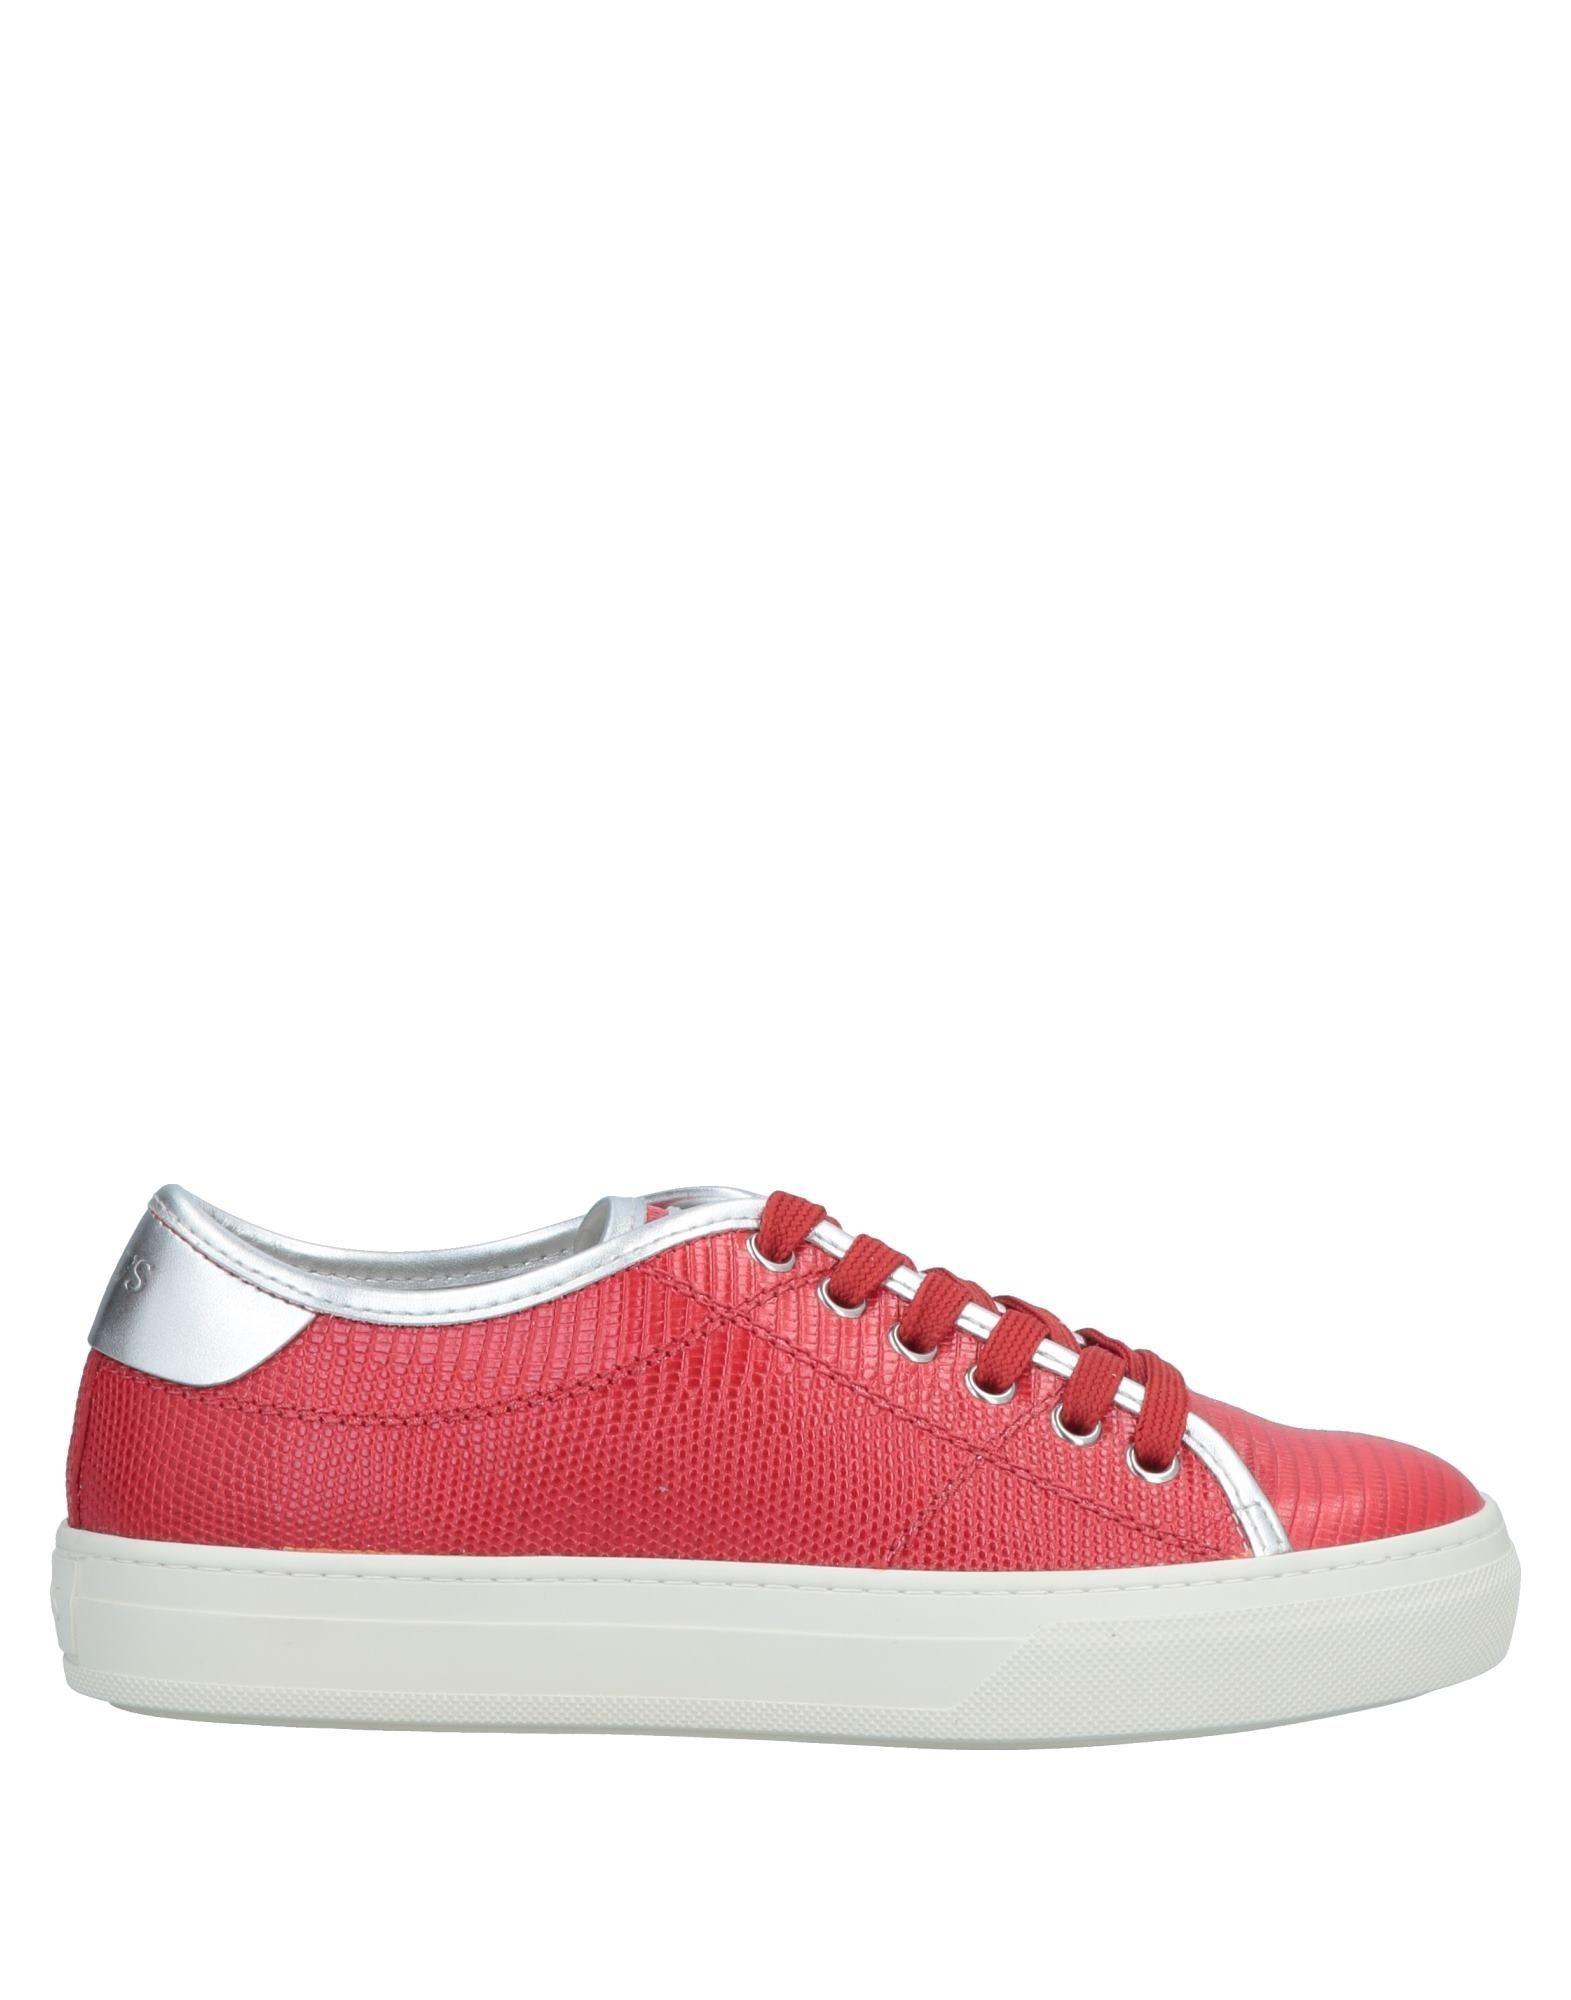 brand new 52466 1cb6a tods-Red-Low-tops-Sneakers.jpeg